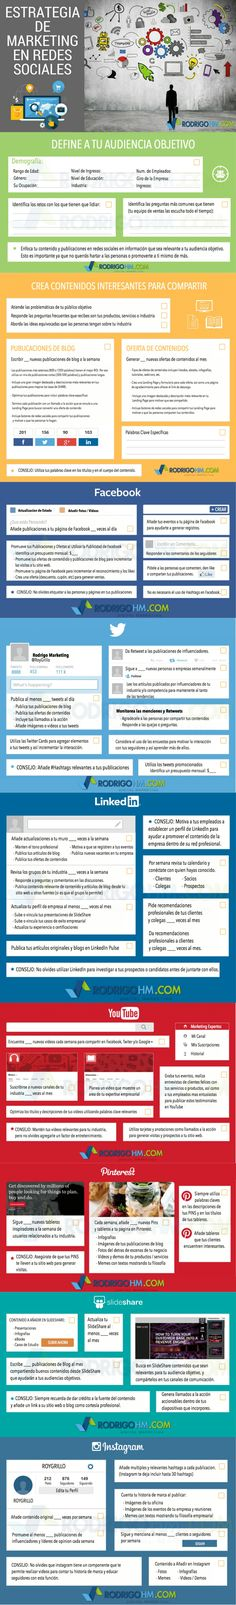 Estrategia de marketing en redes sociales... #SocialMediaOP #Marketing #SocialMedia